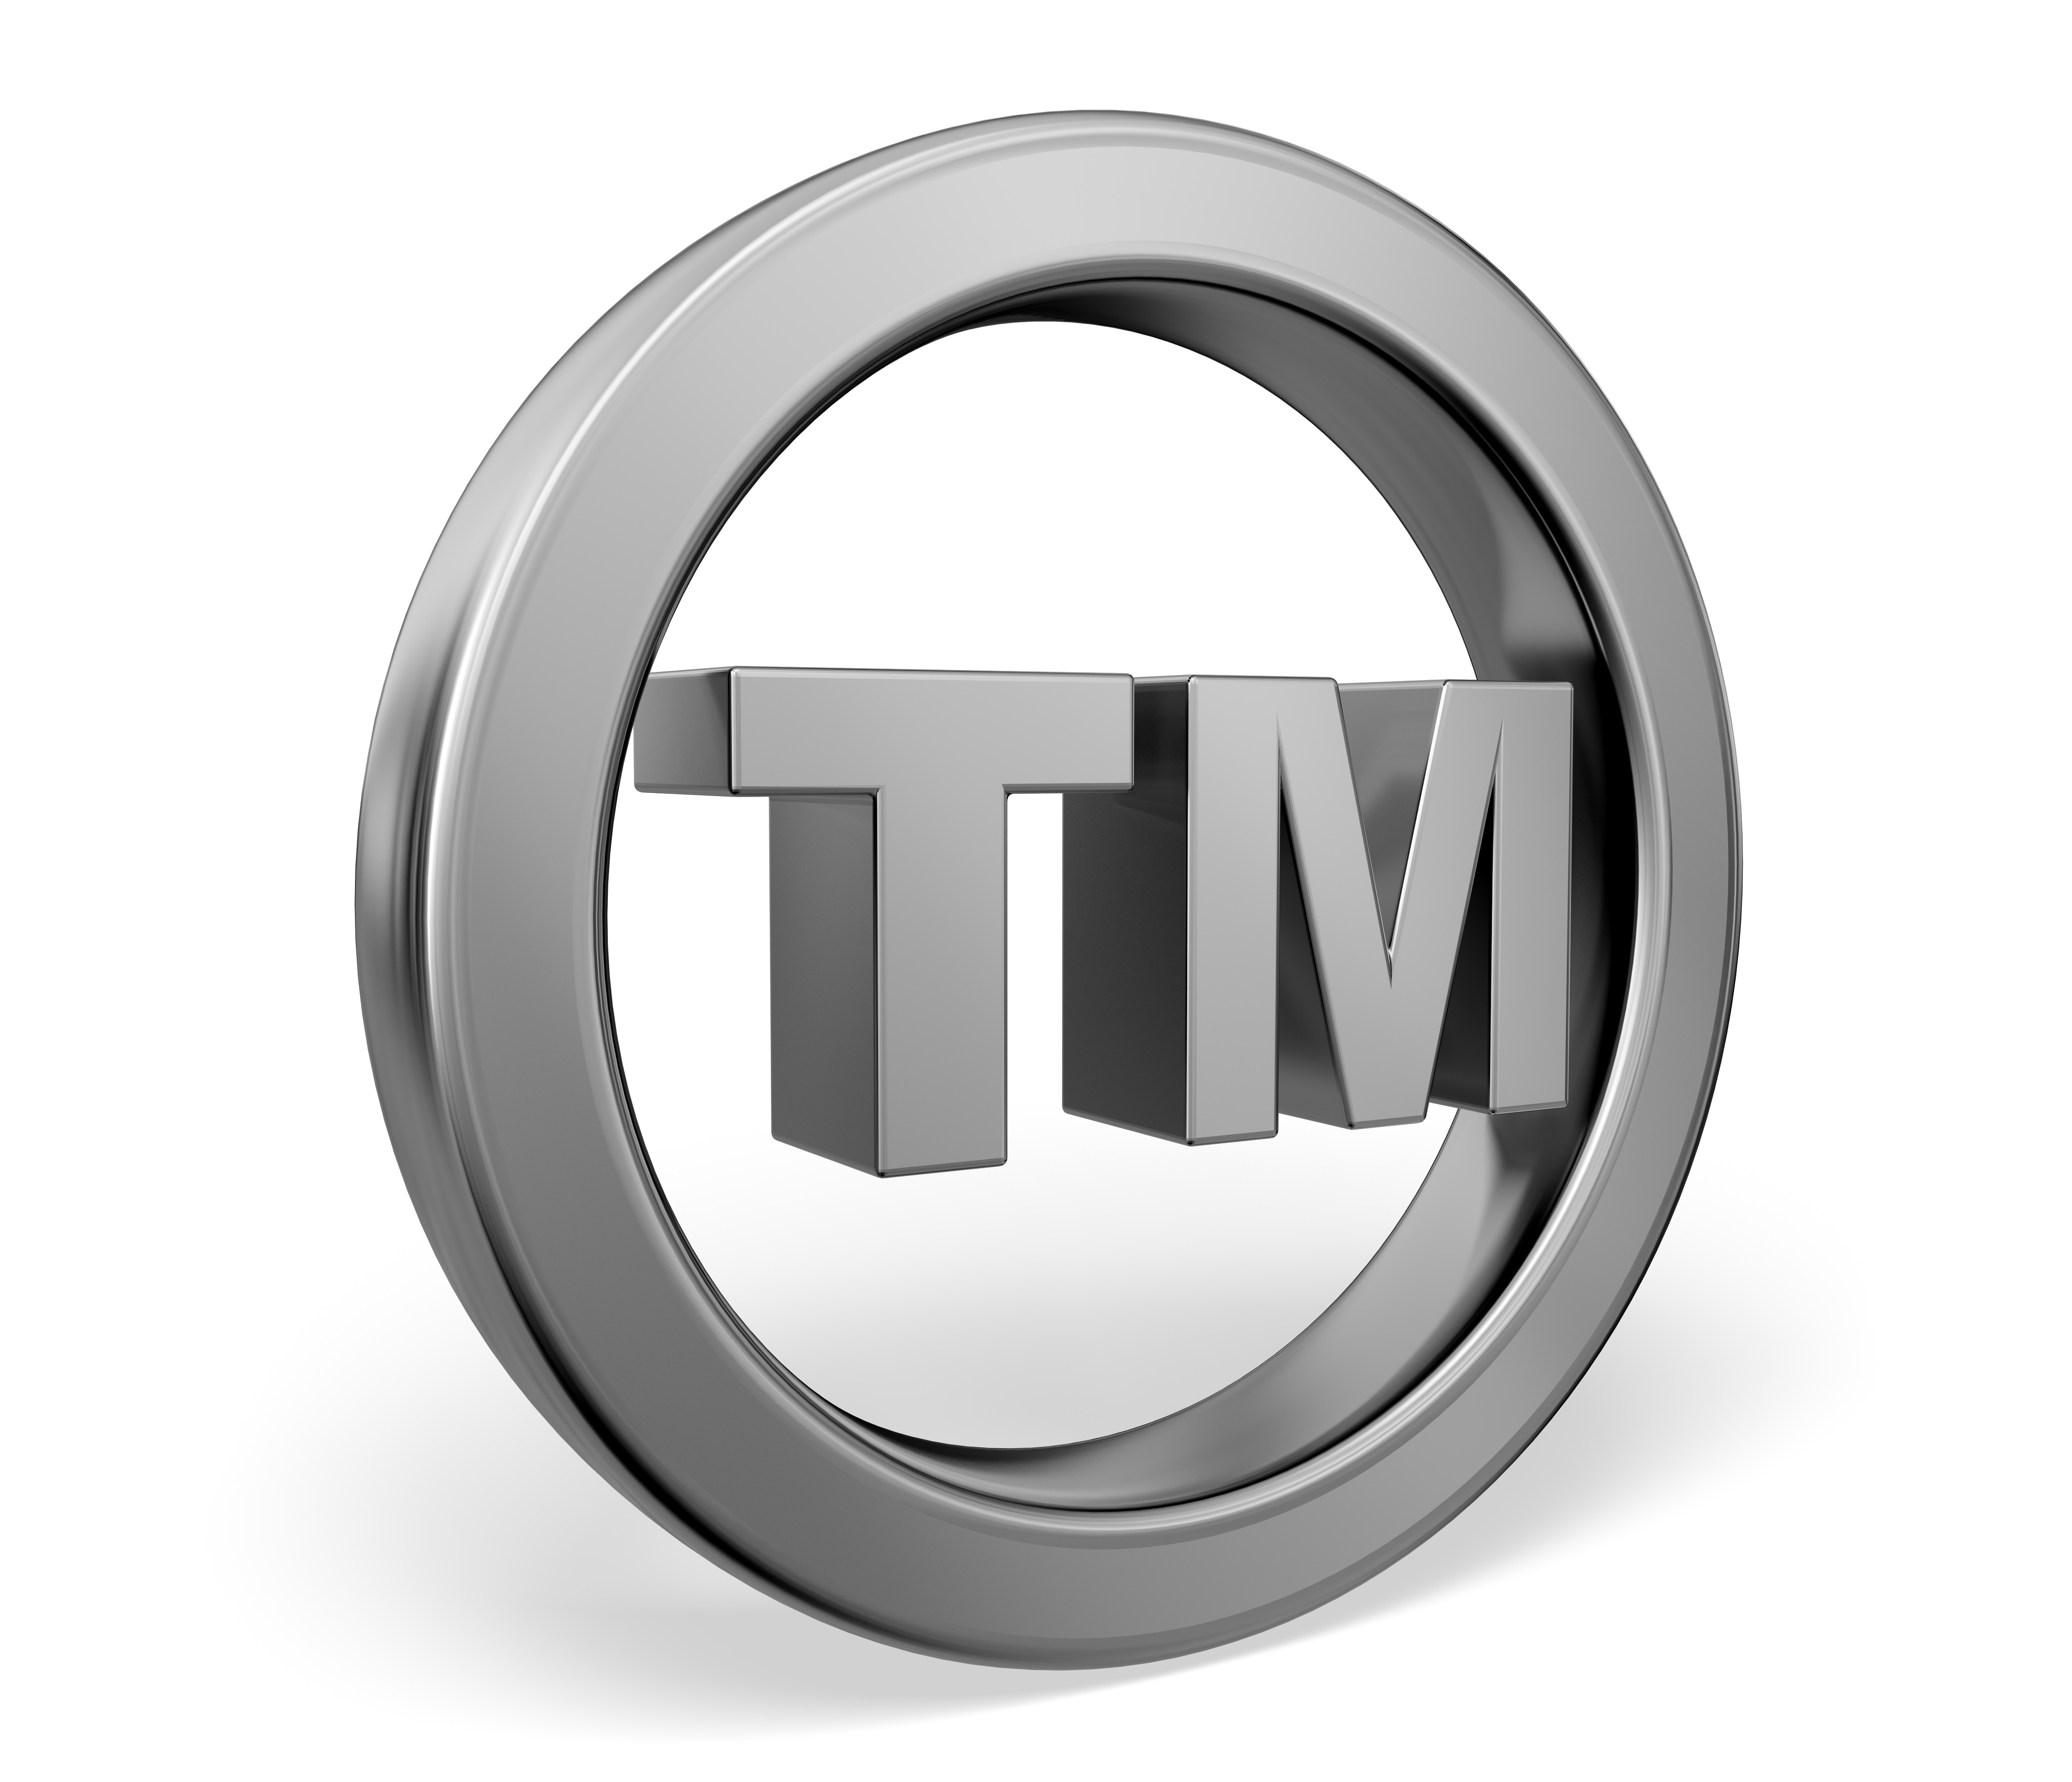 Branding 101: 3 Tips for Creating a Distinctive Trademark